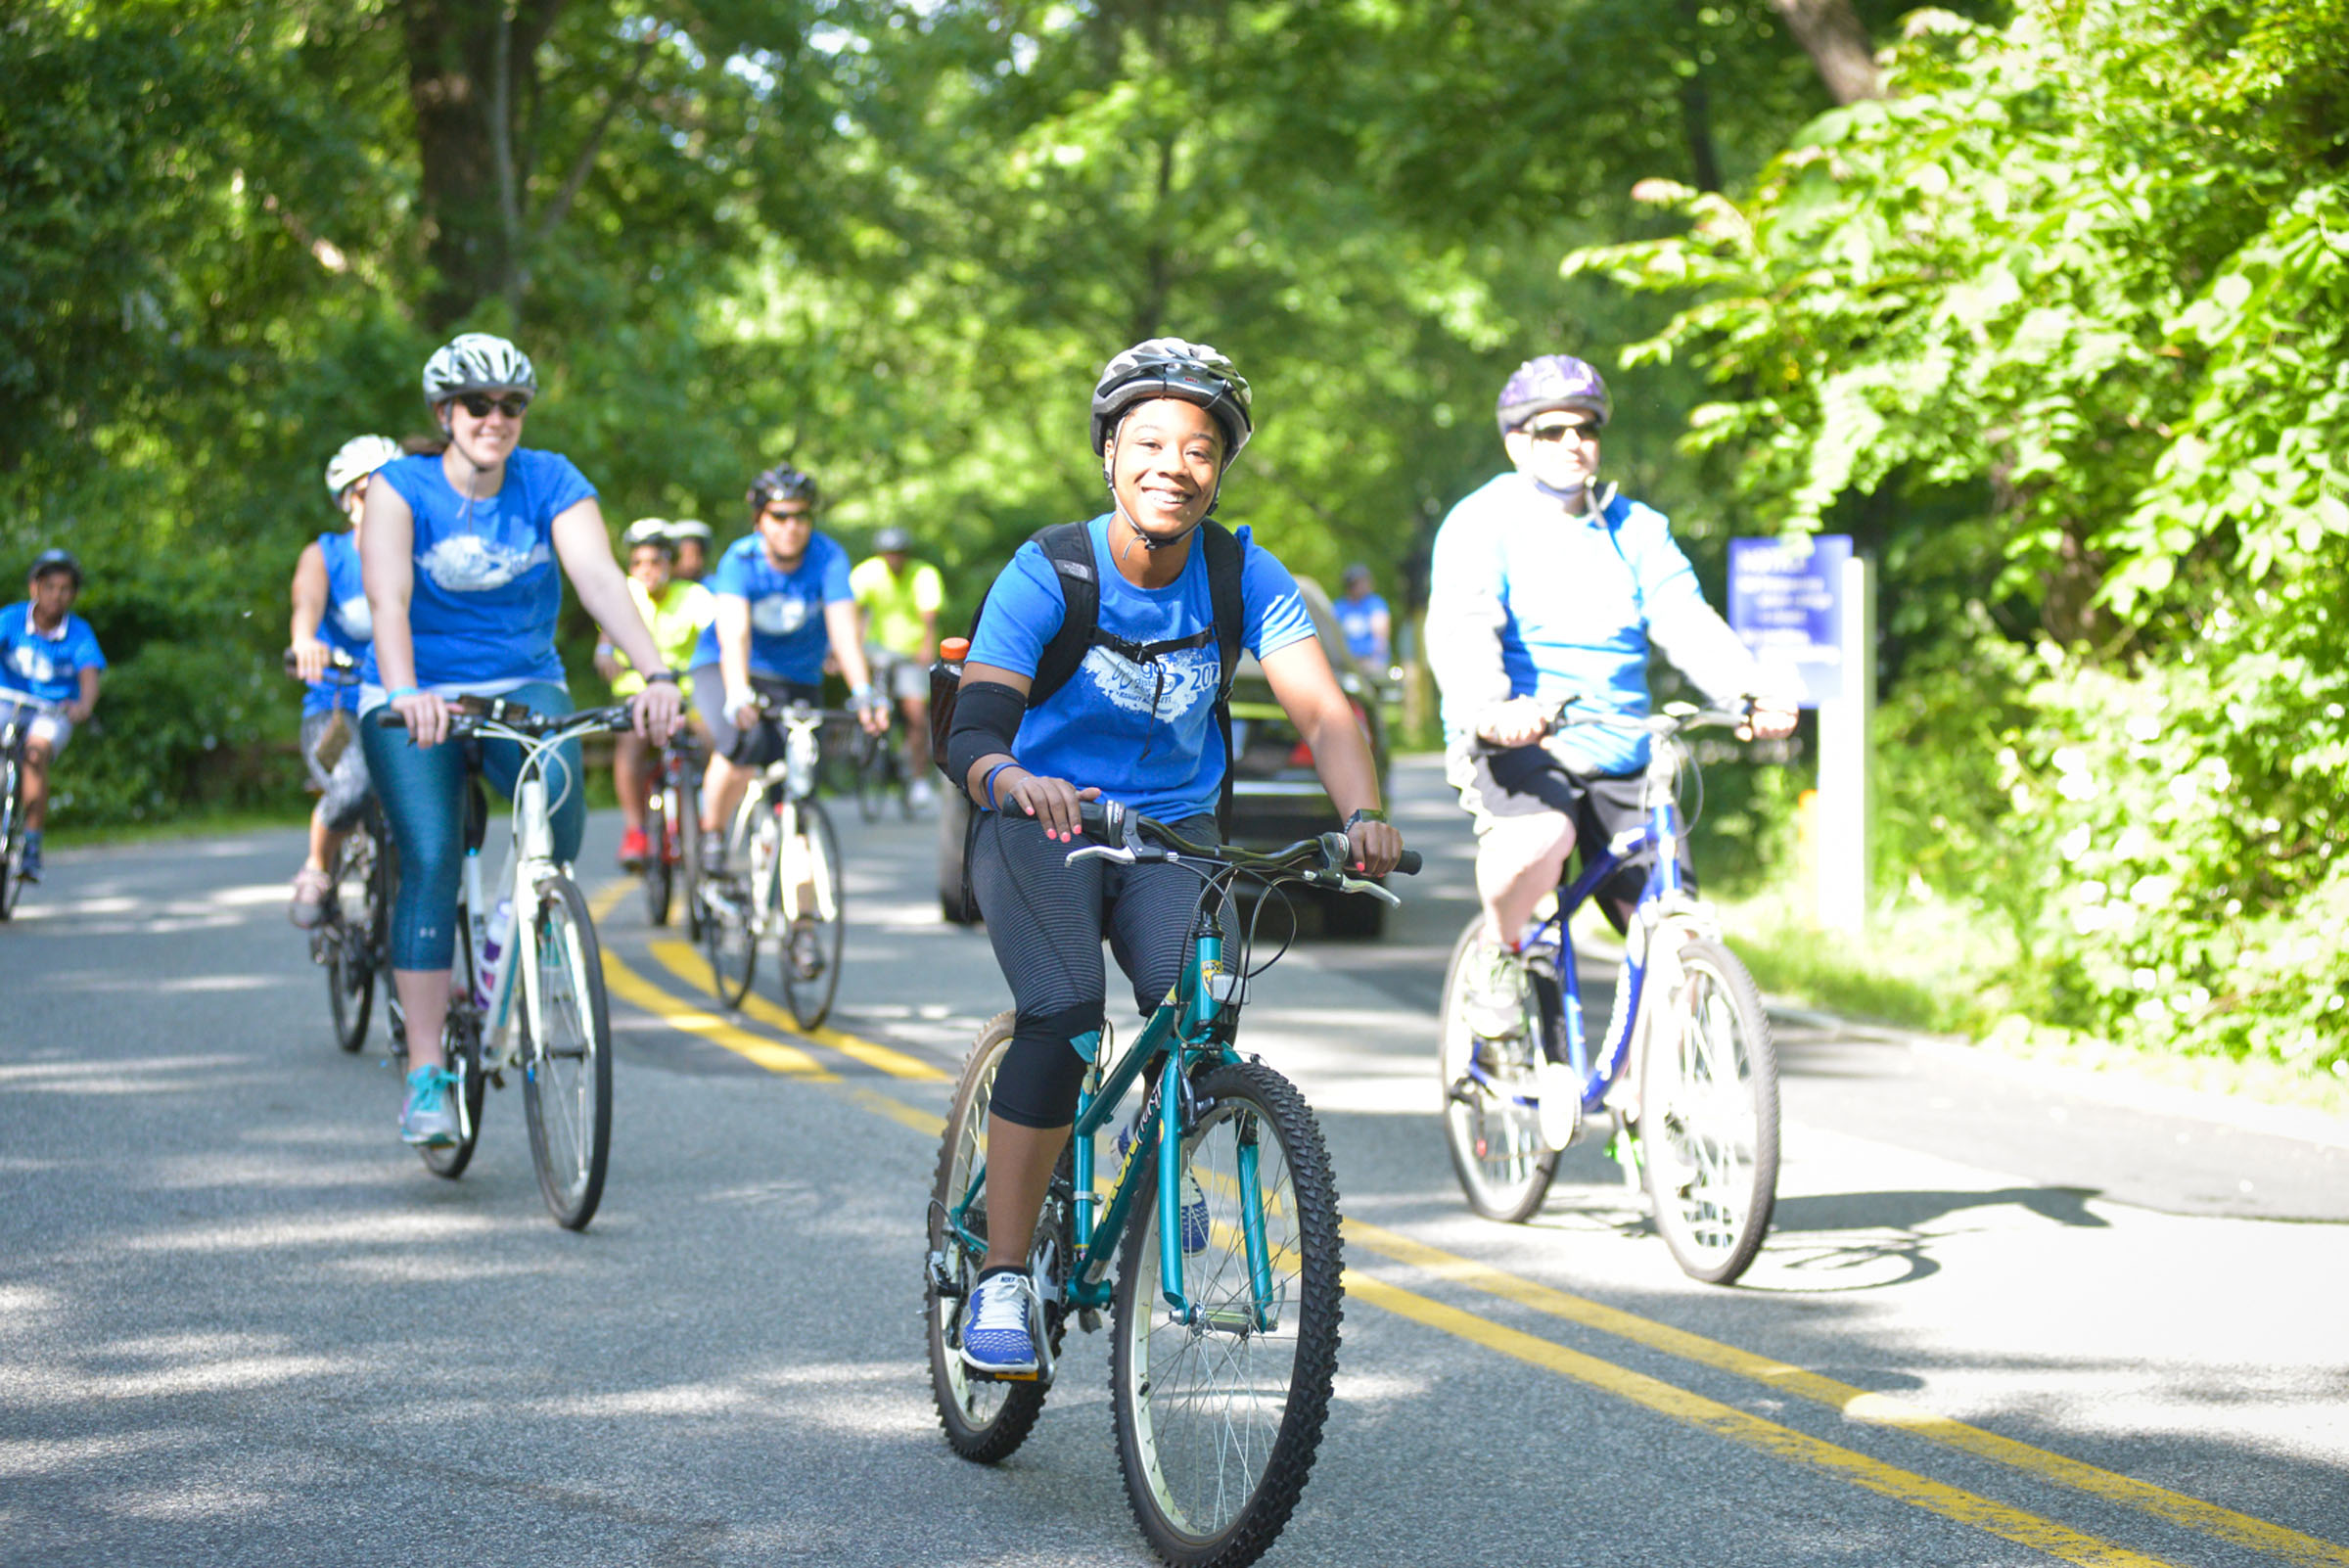 2017-06-04 GTD4A Charity Bike Ride - BCC - Paramus NJ-1971.jpg